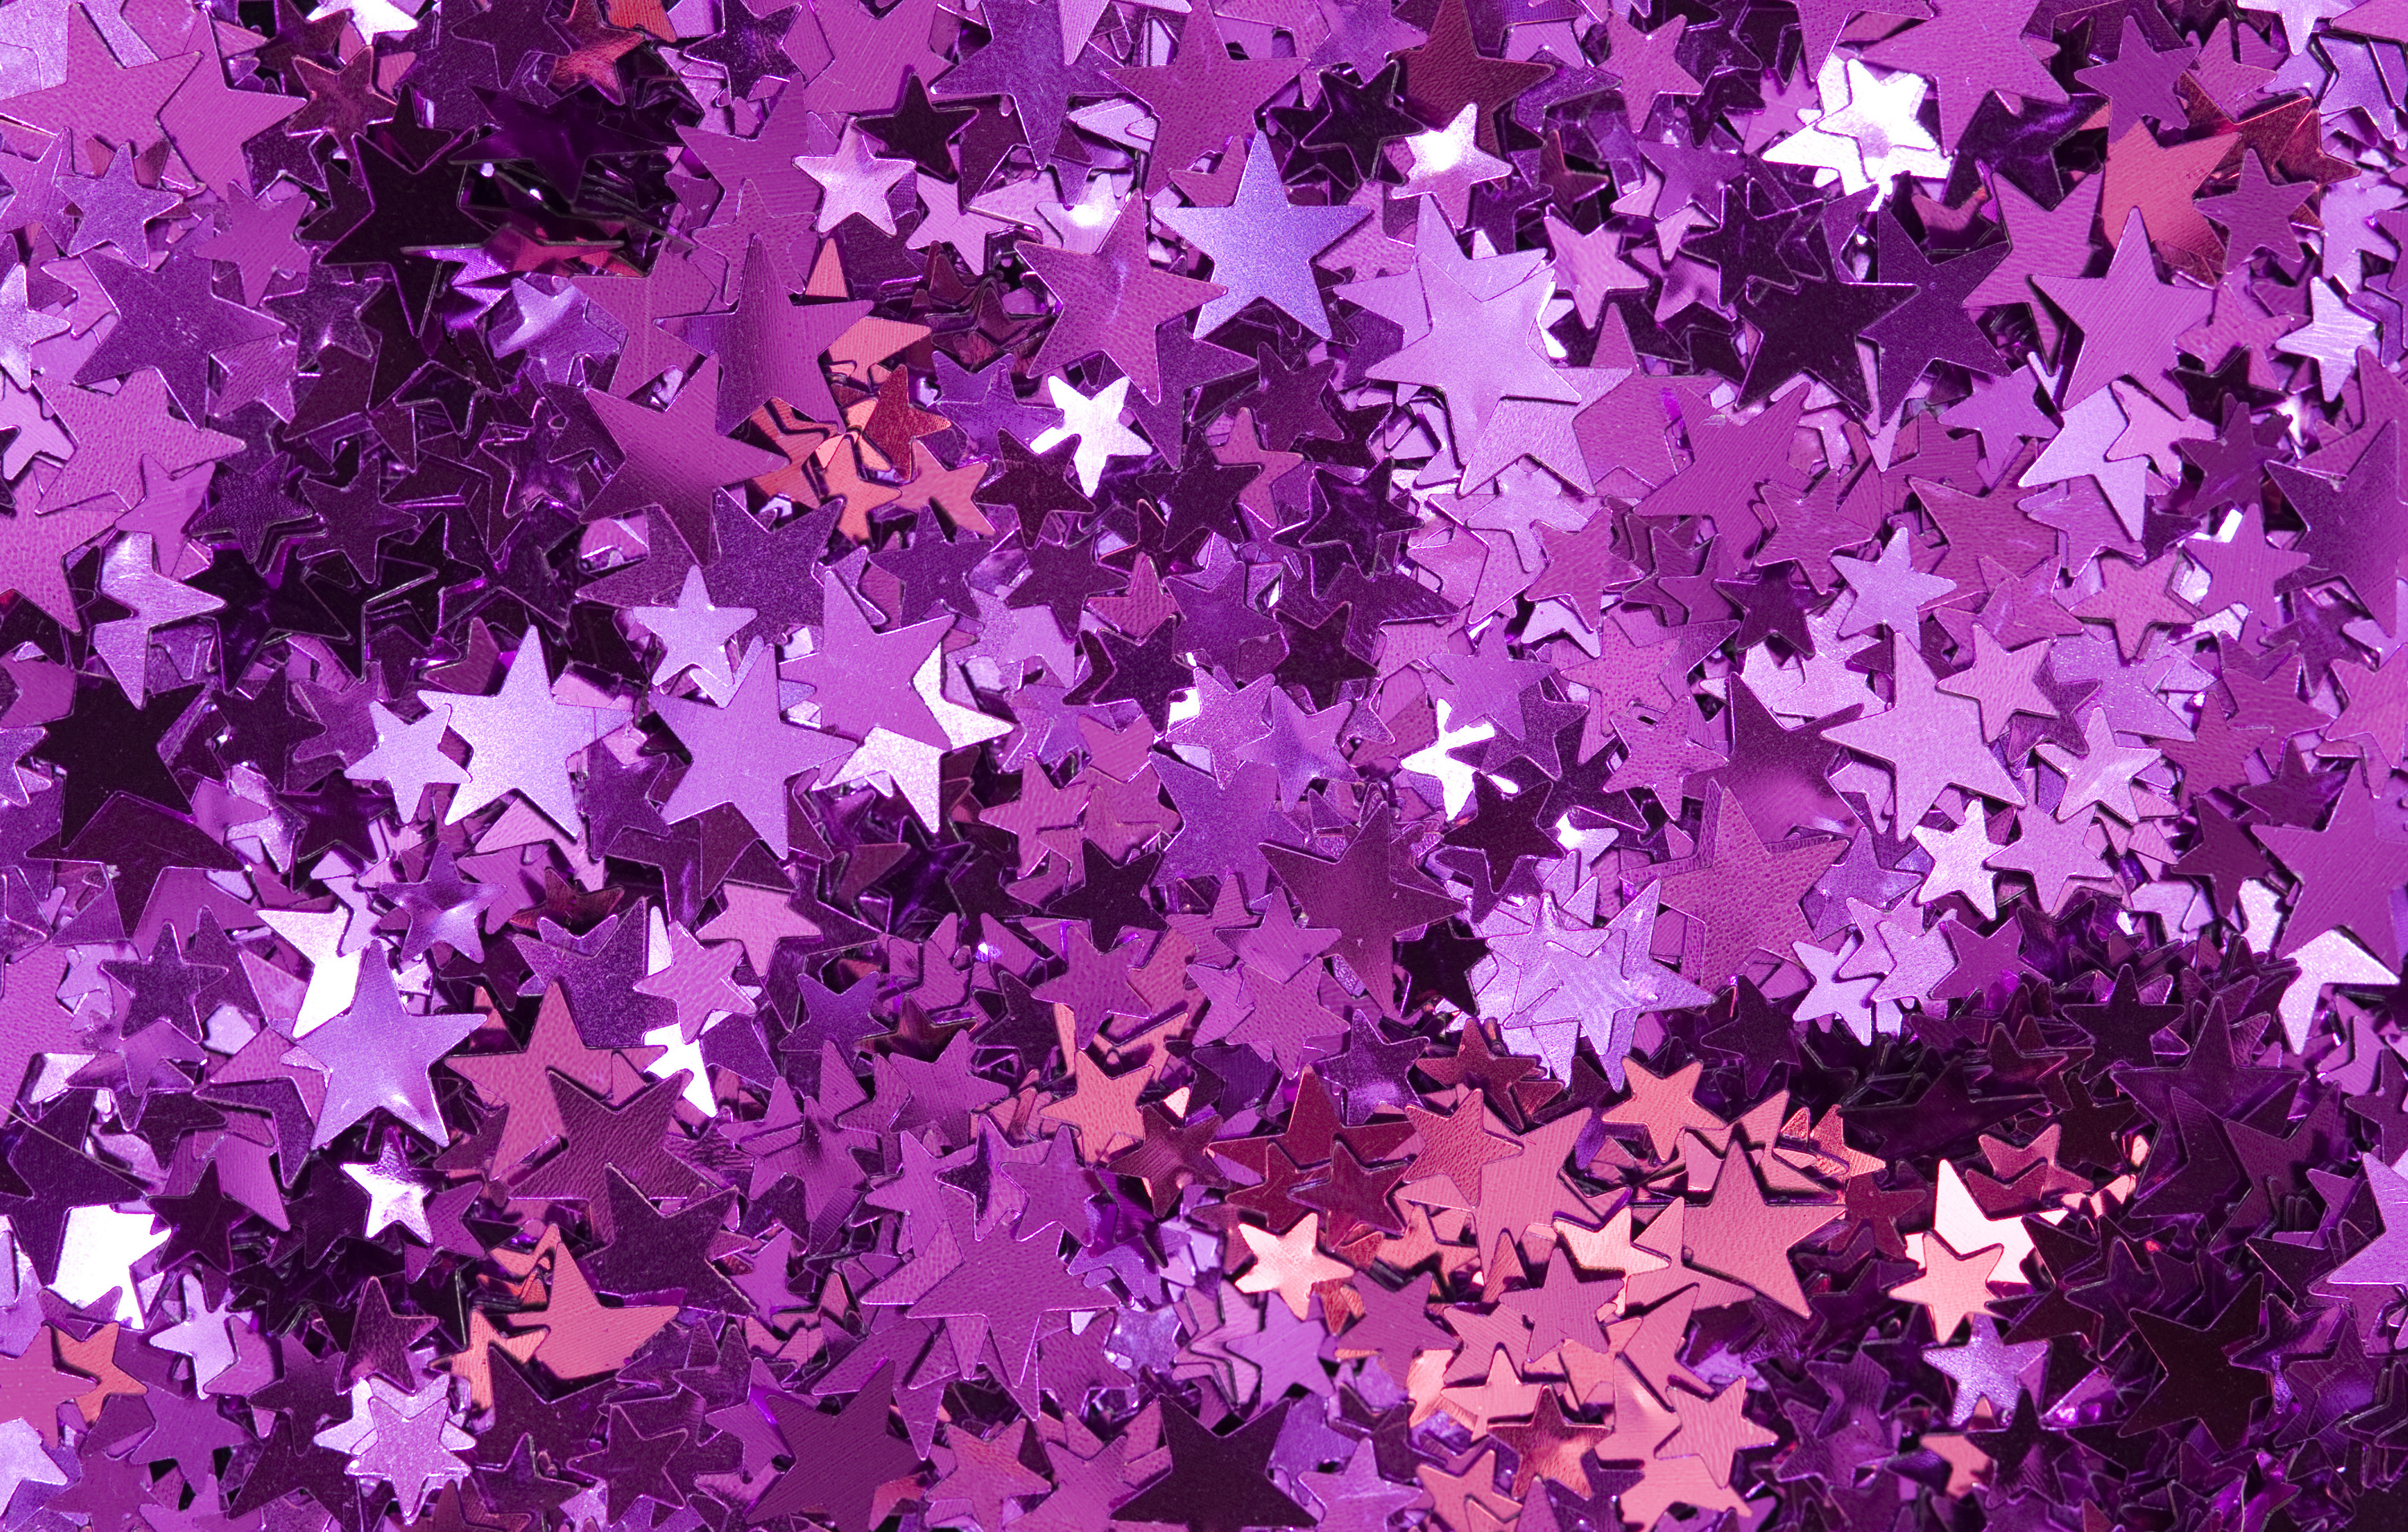 Free stock photo 3623 metallic star background freeimageslive a colorful pink backdrop of metallic confetti star shapes altavistaventures Images